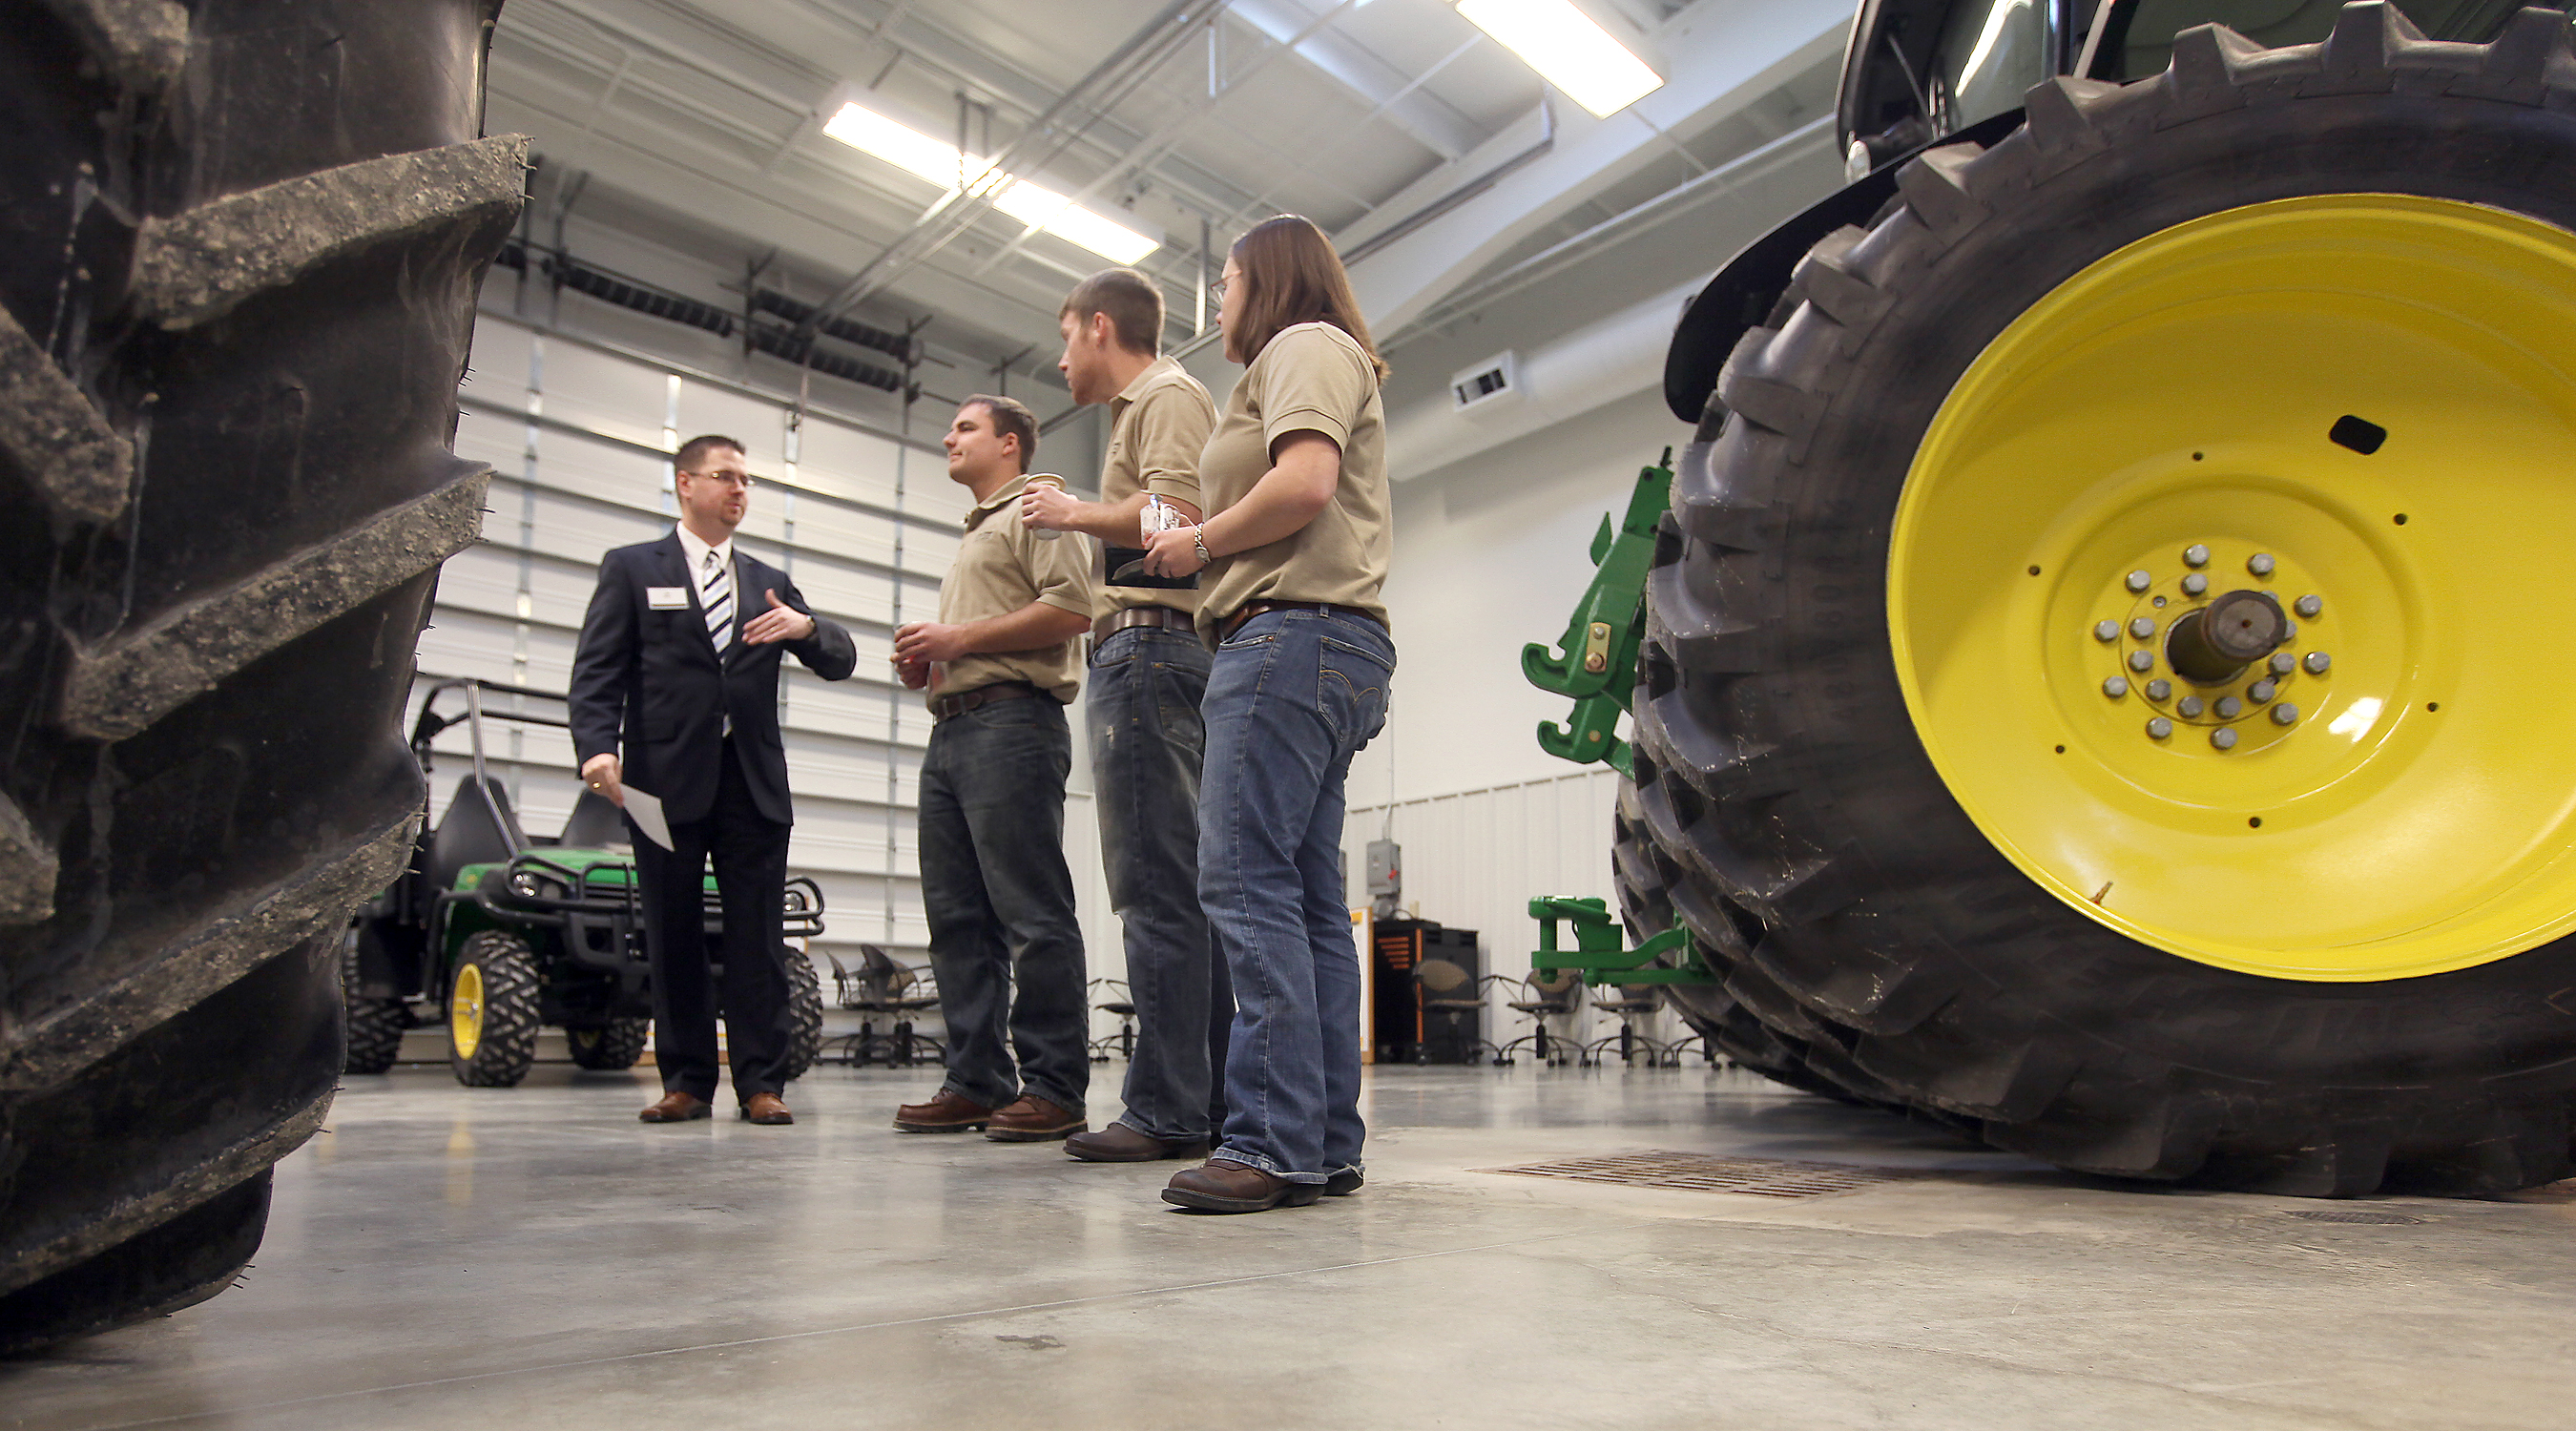 Adm Agricultural Innovation Center At Purdue Opens